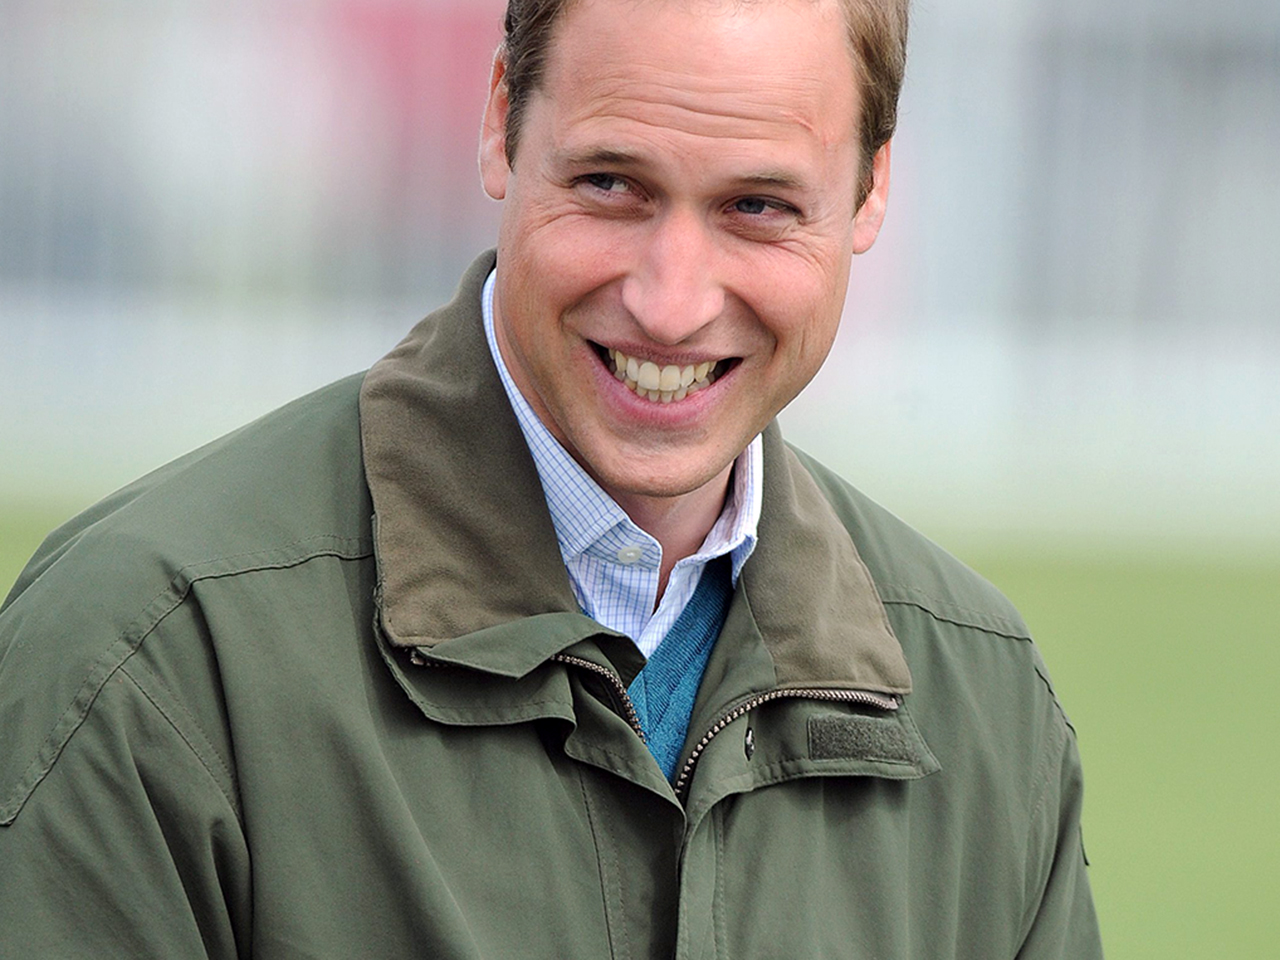 Teen To Prince William: Thank You For Saving My Life